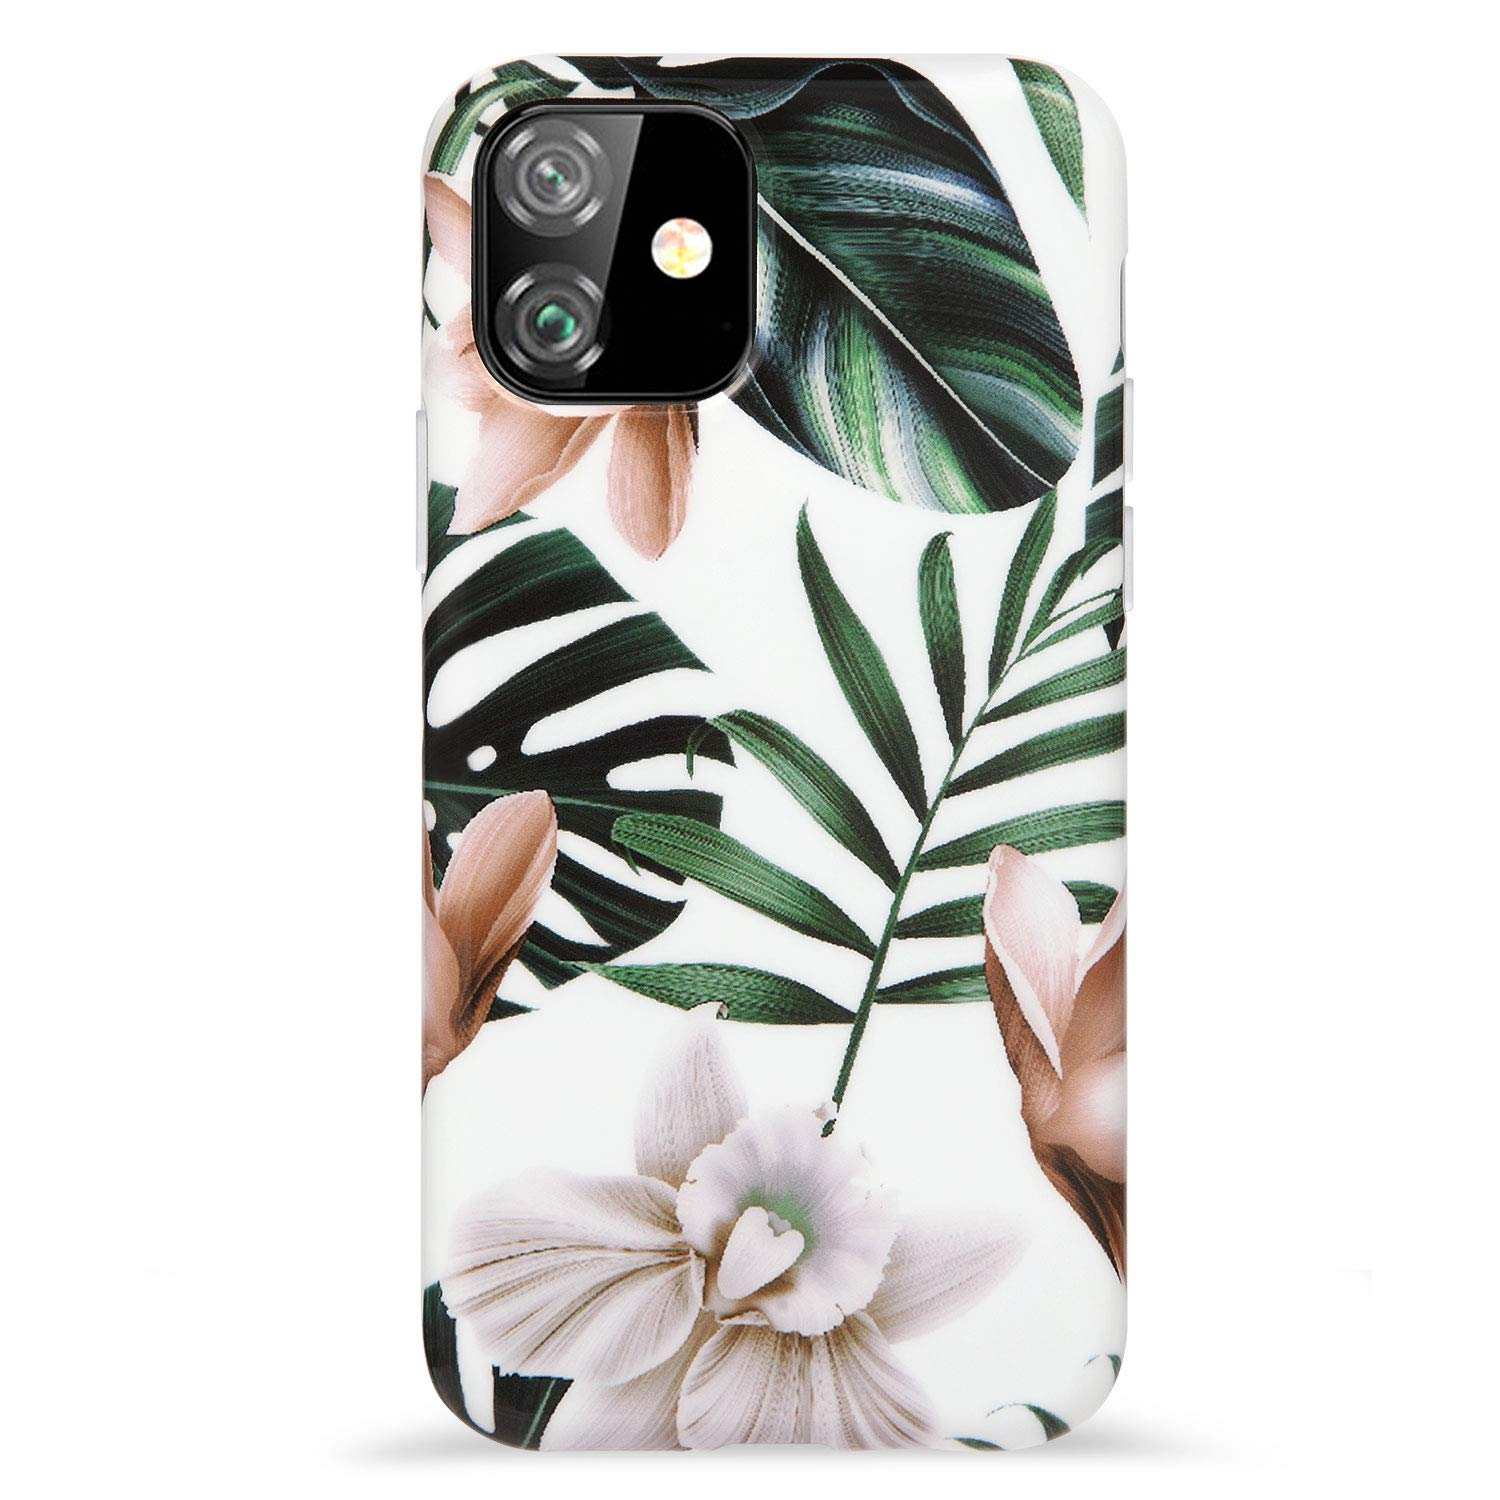 """Reejax iPhone 11 Case 6.1 inch Case with Glass Screen Protector,Flower Leaf for Girls Women Best Protective Slim Fit Clear Bumper Glossy TPU Soft Silicon Cover Phone Case for iPhone 11 Case 6.1"""""""